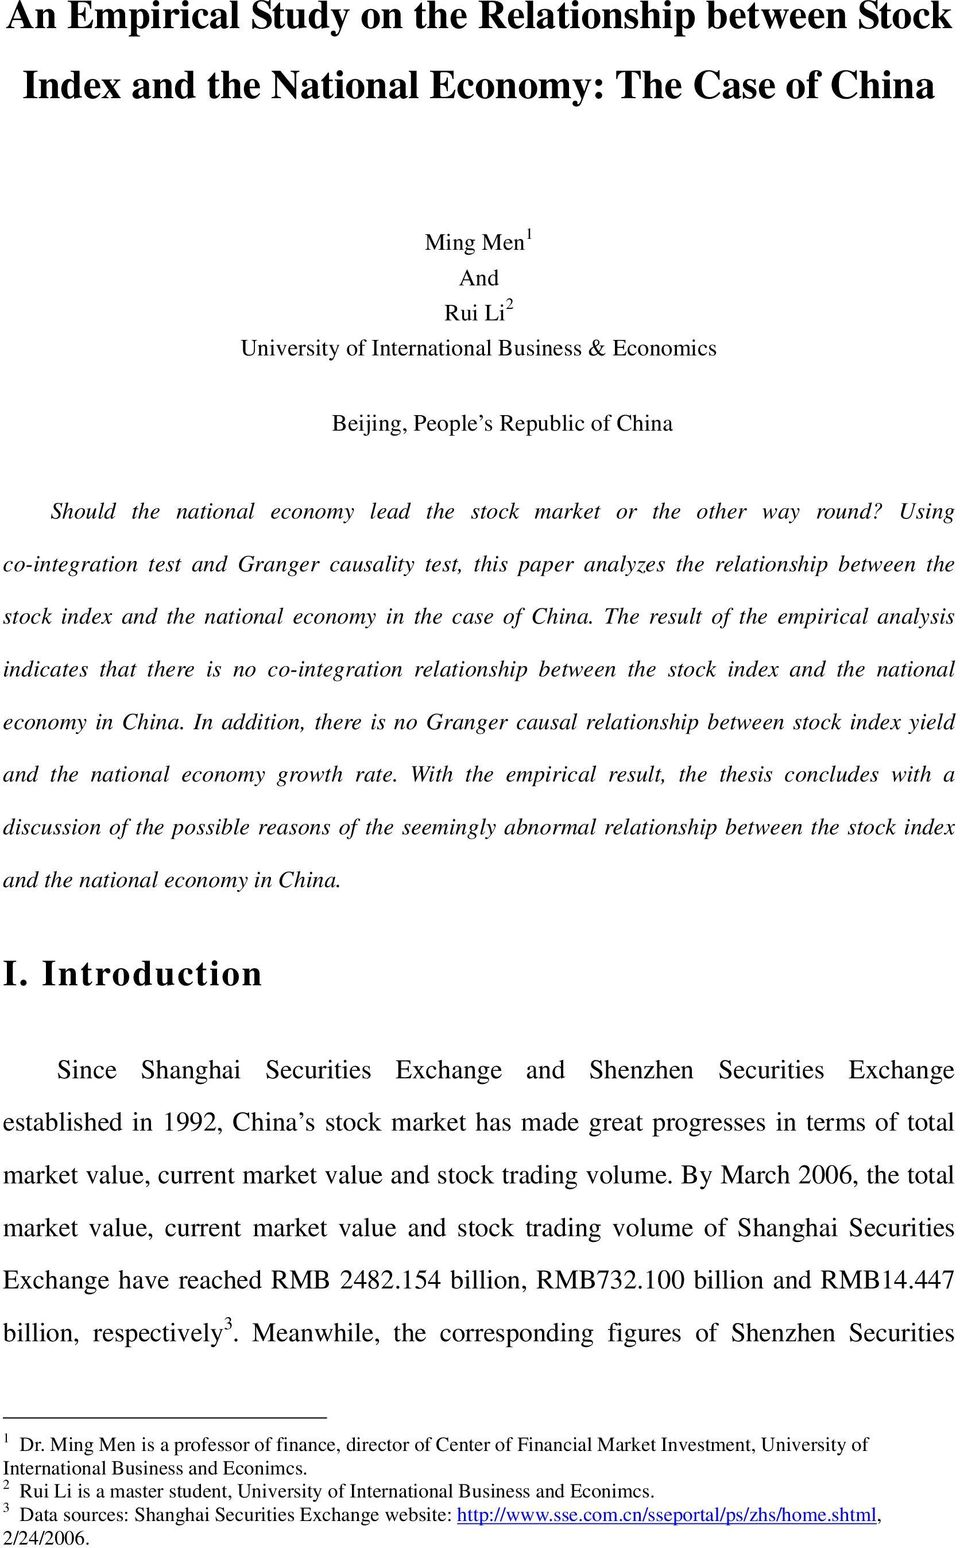 Using co-integration test and Granger causality test, this paper analyzes the relationship between the stock index and the national economy in the case of China.